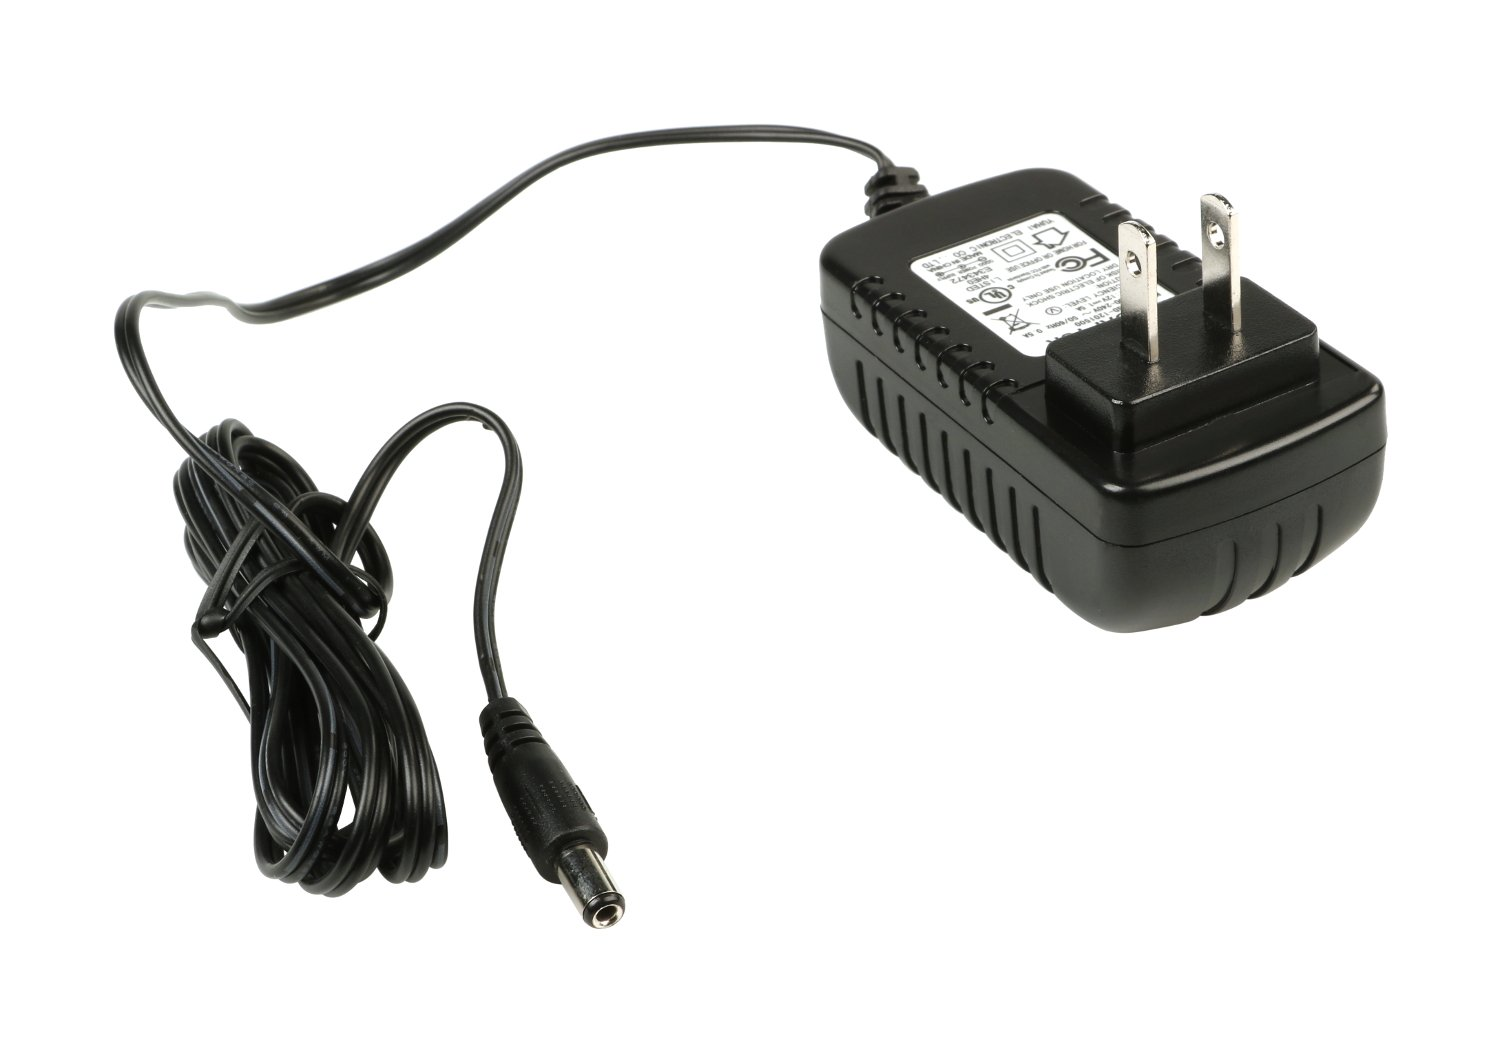 12v Power Supply for MIC860 and MIC604